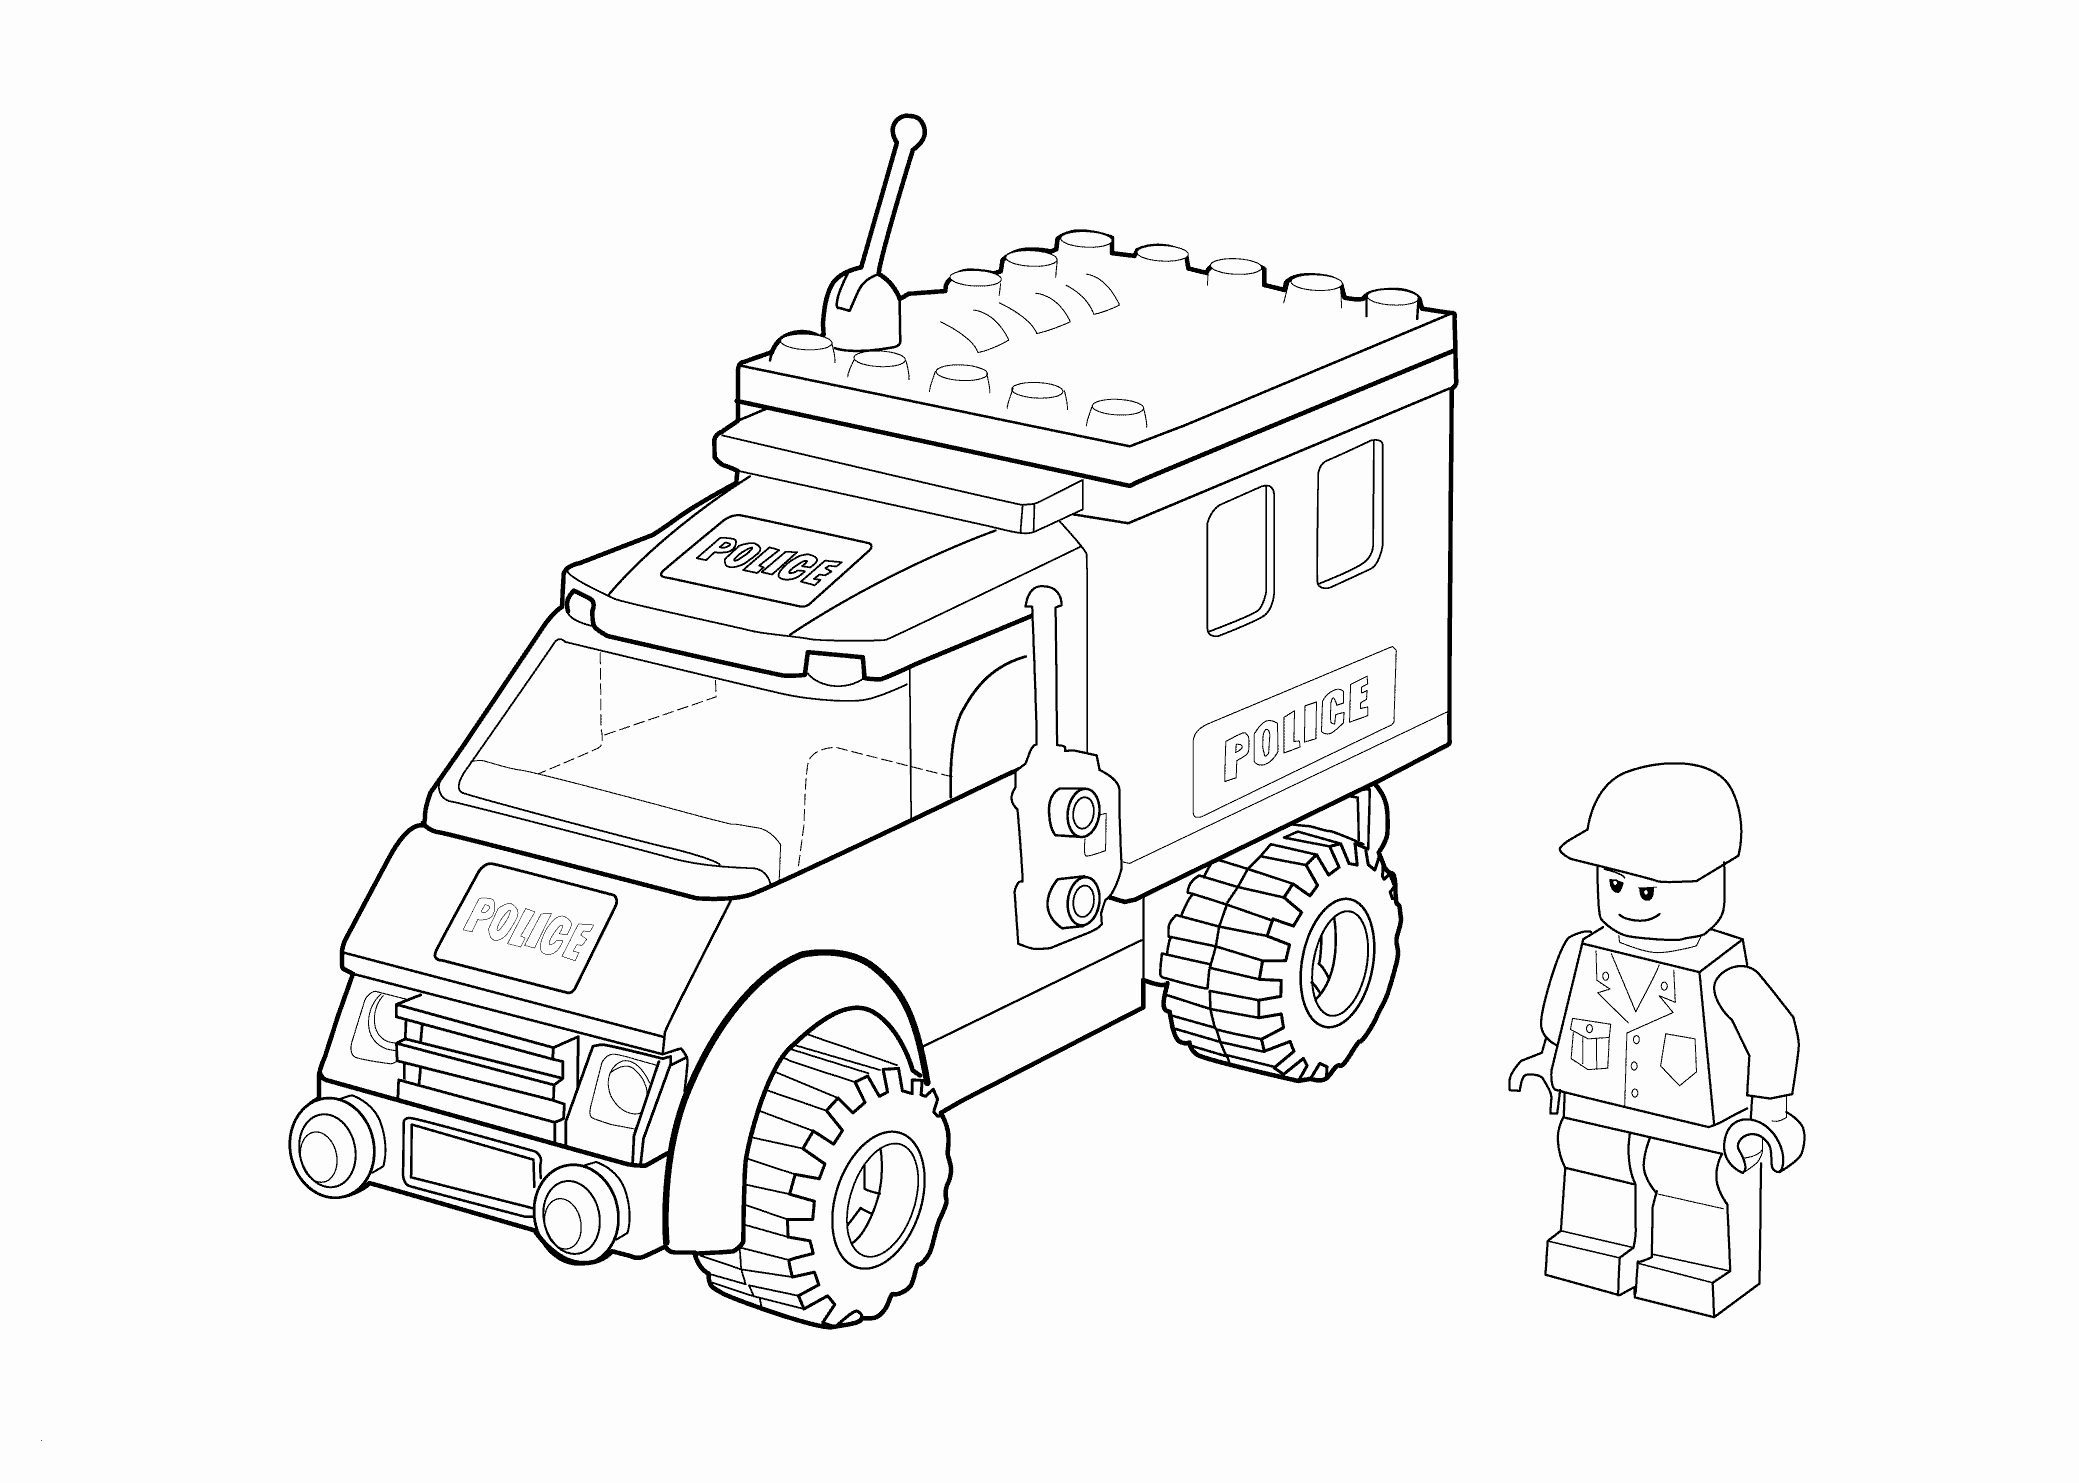 Lego City Coloring Pages  to Print 5j - Free For Children